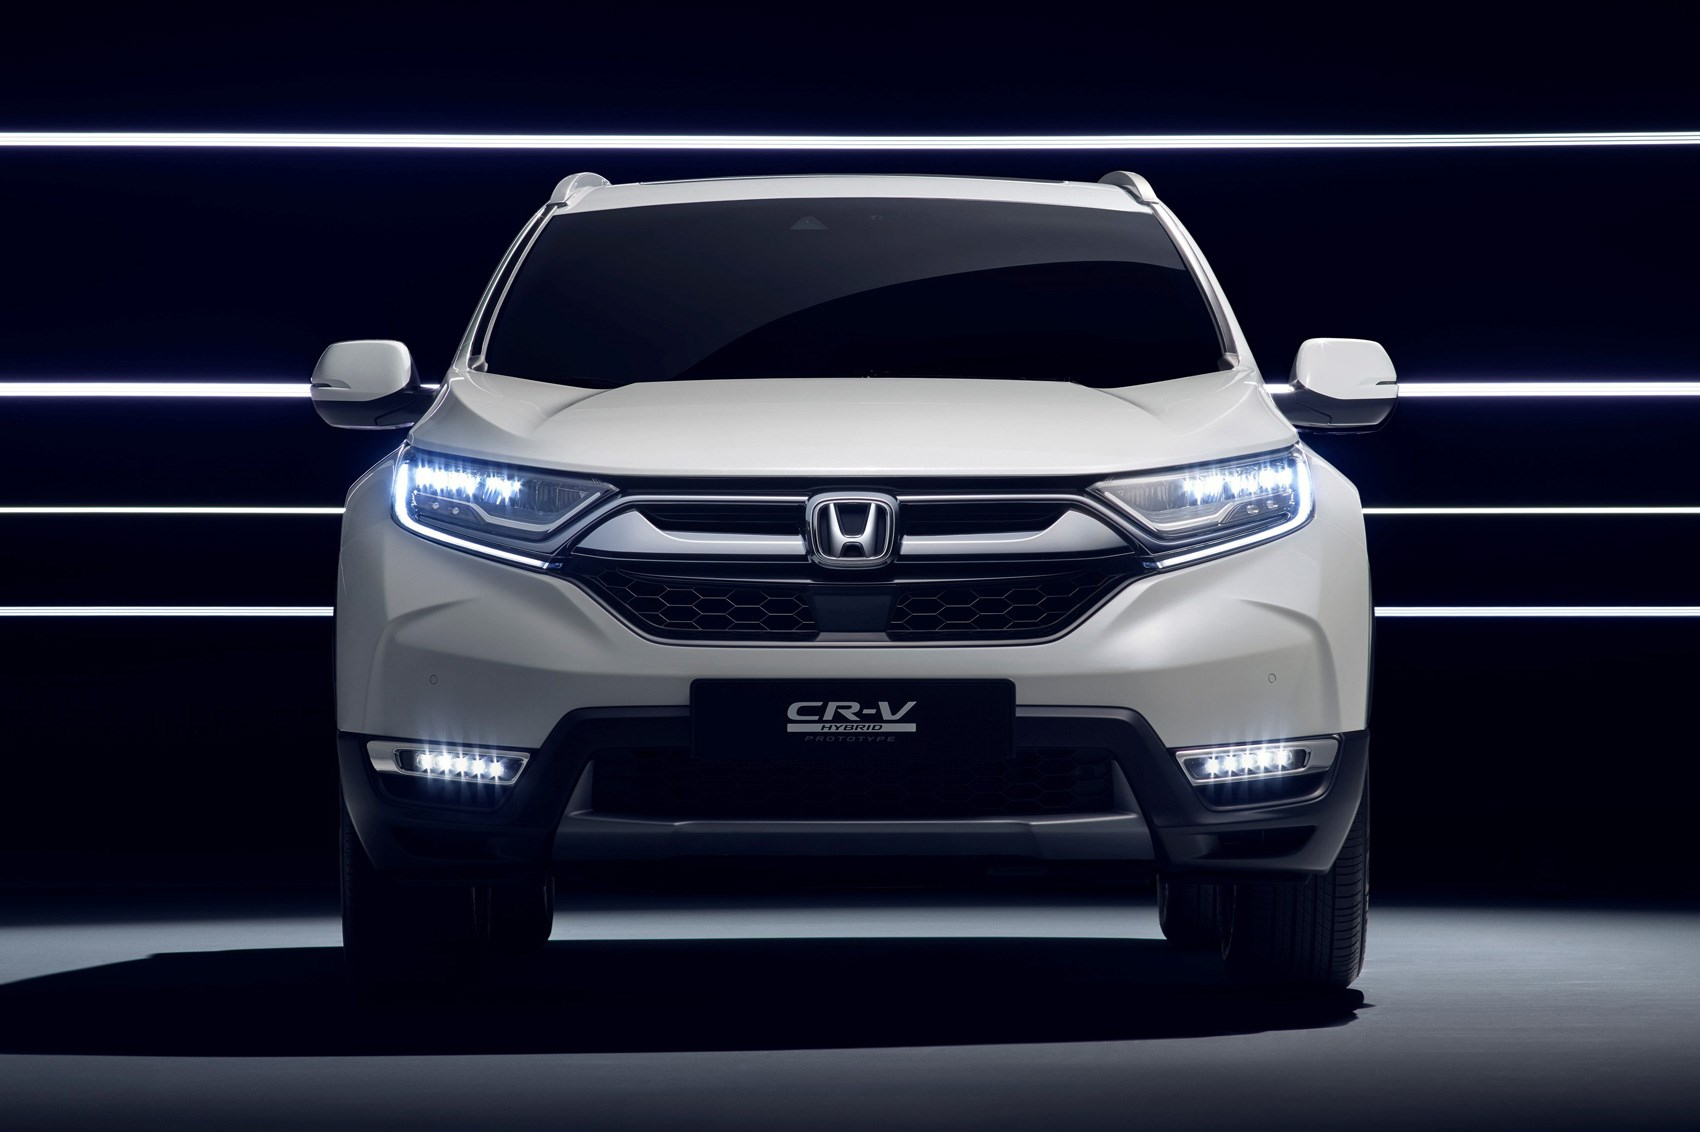 Honda CR-V Hybrid Prototype set for Frankfurt debut